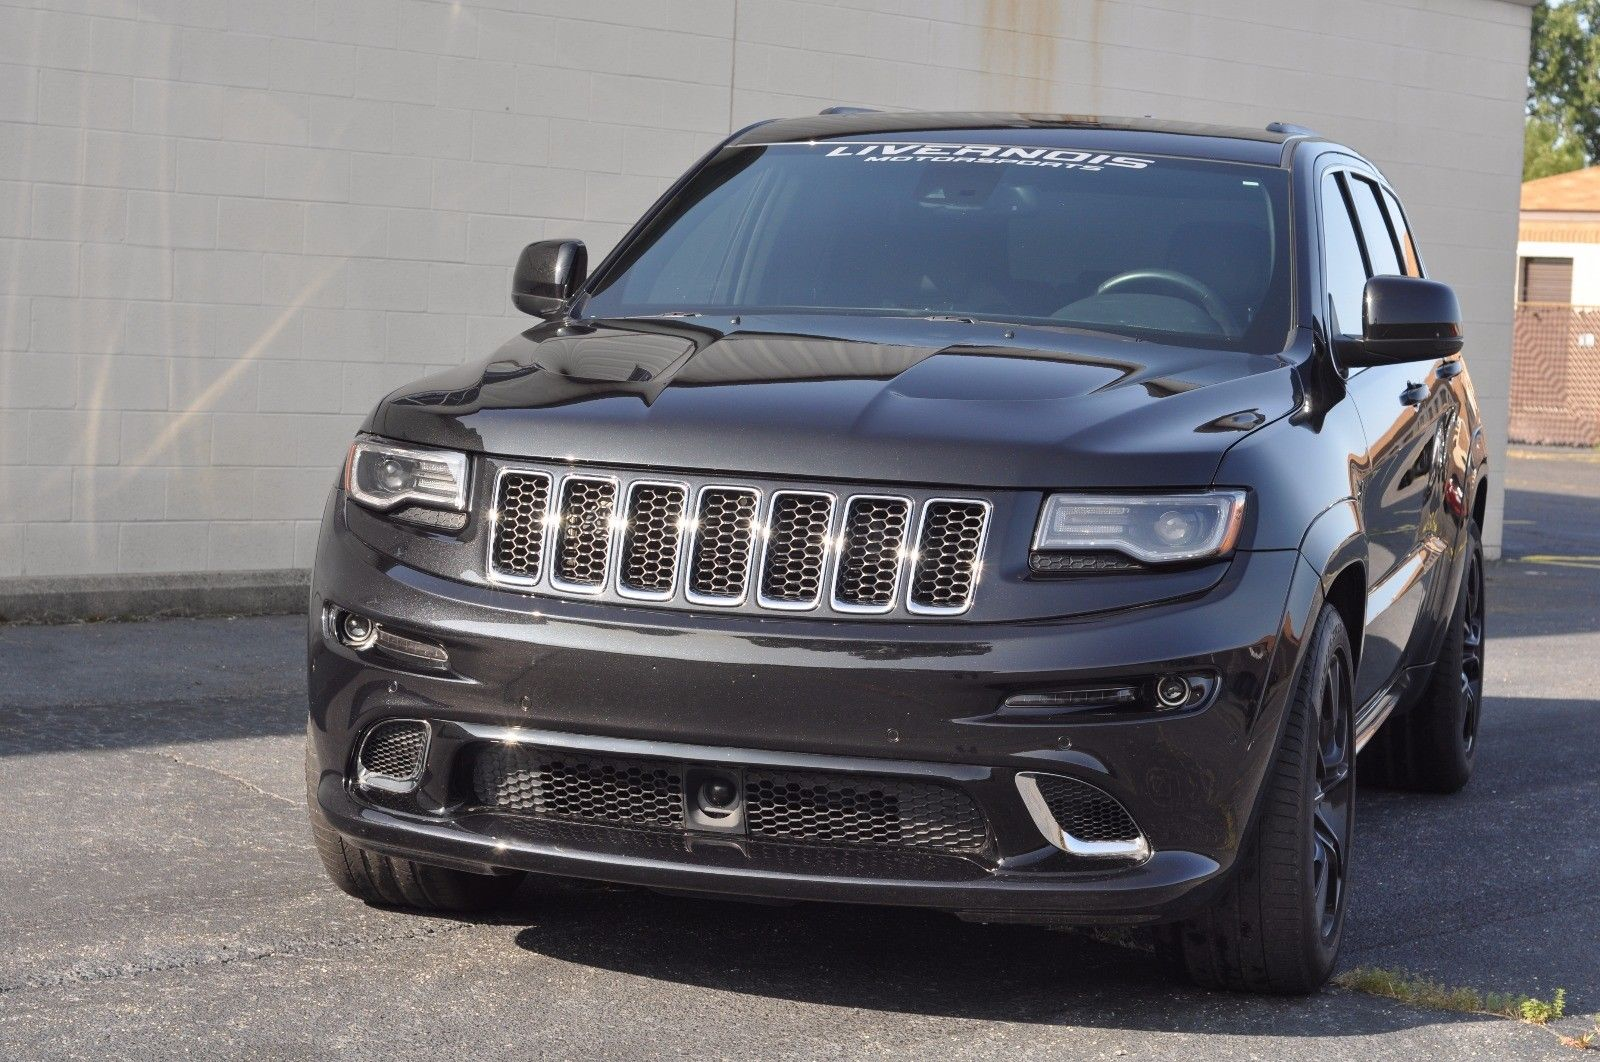 2018 jeep grand cherokee srt8 supercharged